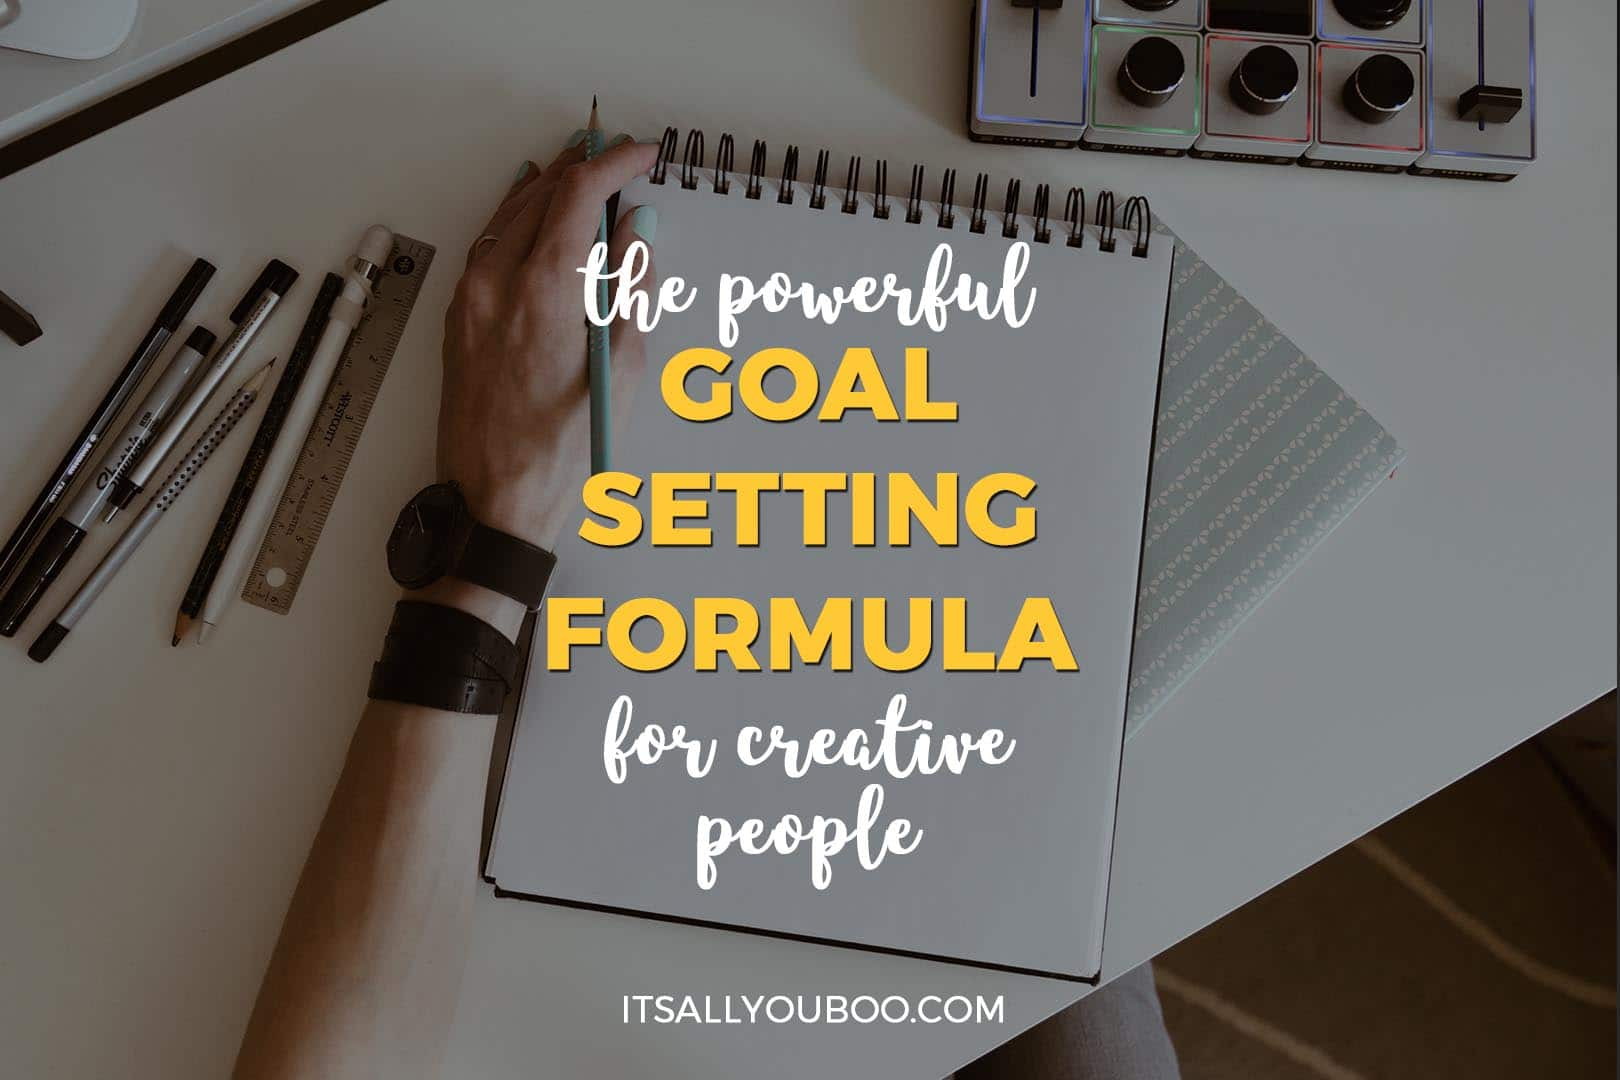 The Powerful Goal Setting Formula for Creative People